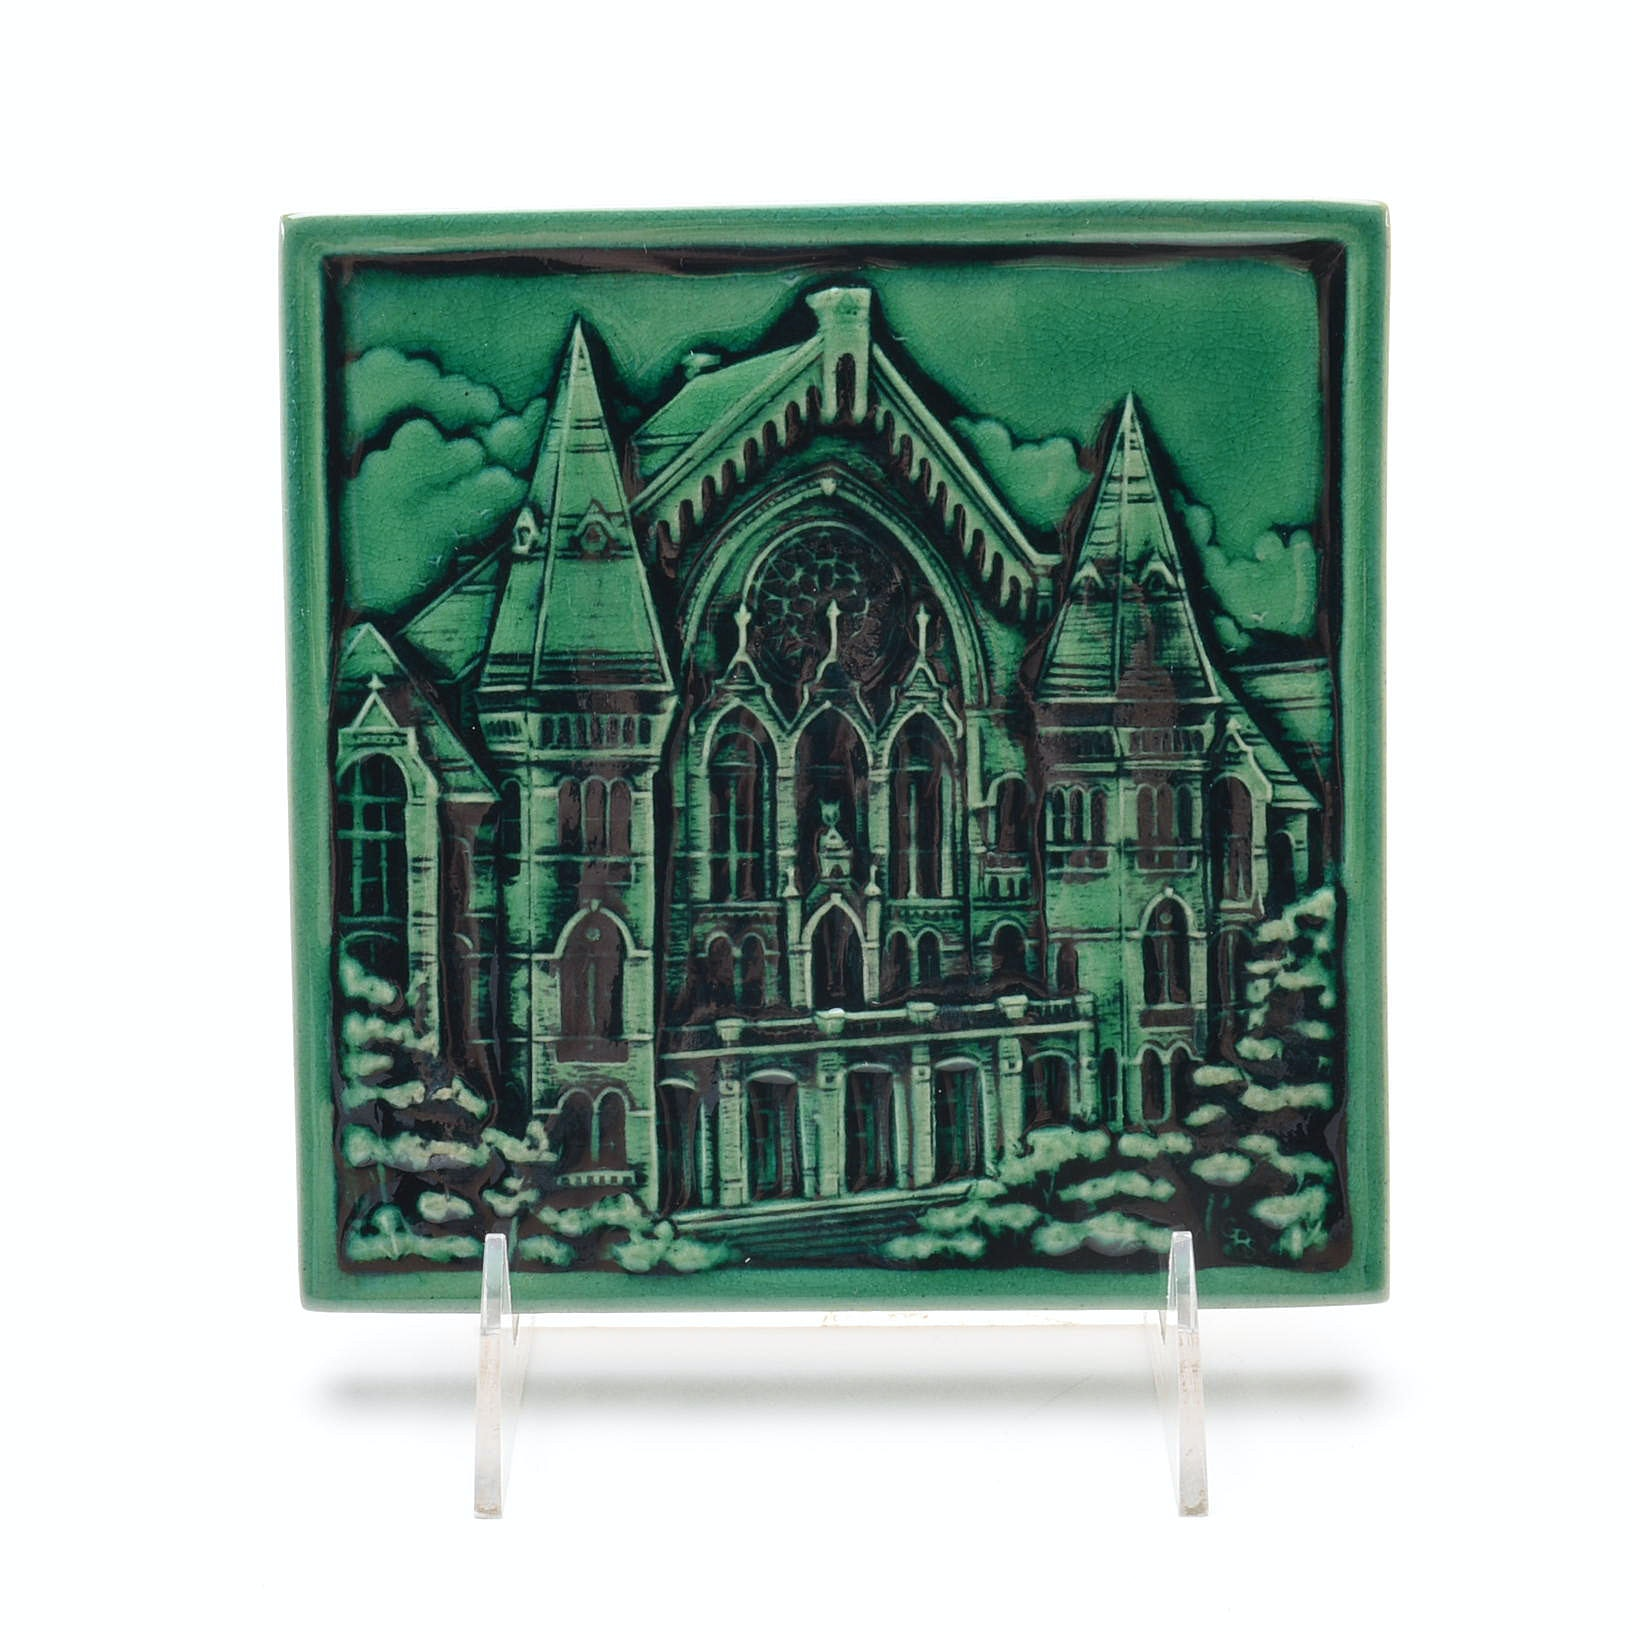 Rookwood Art Pottery Cincinnati Music Hall Tile